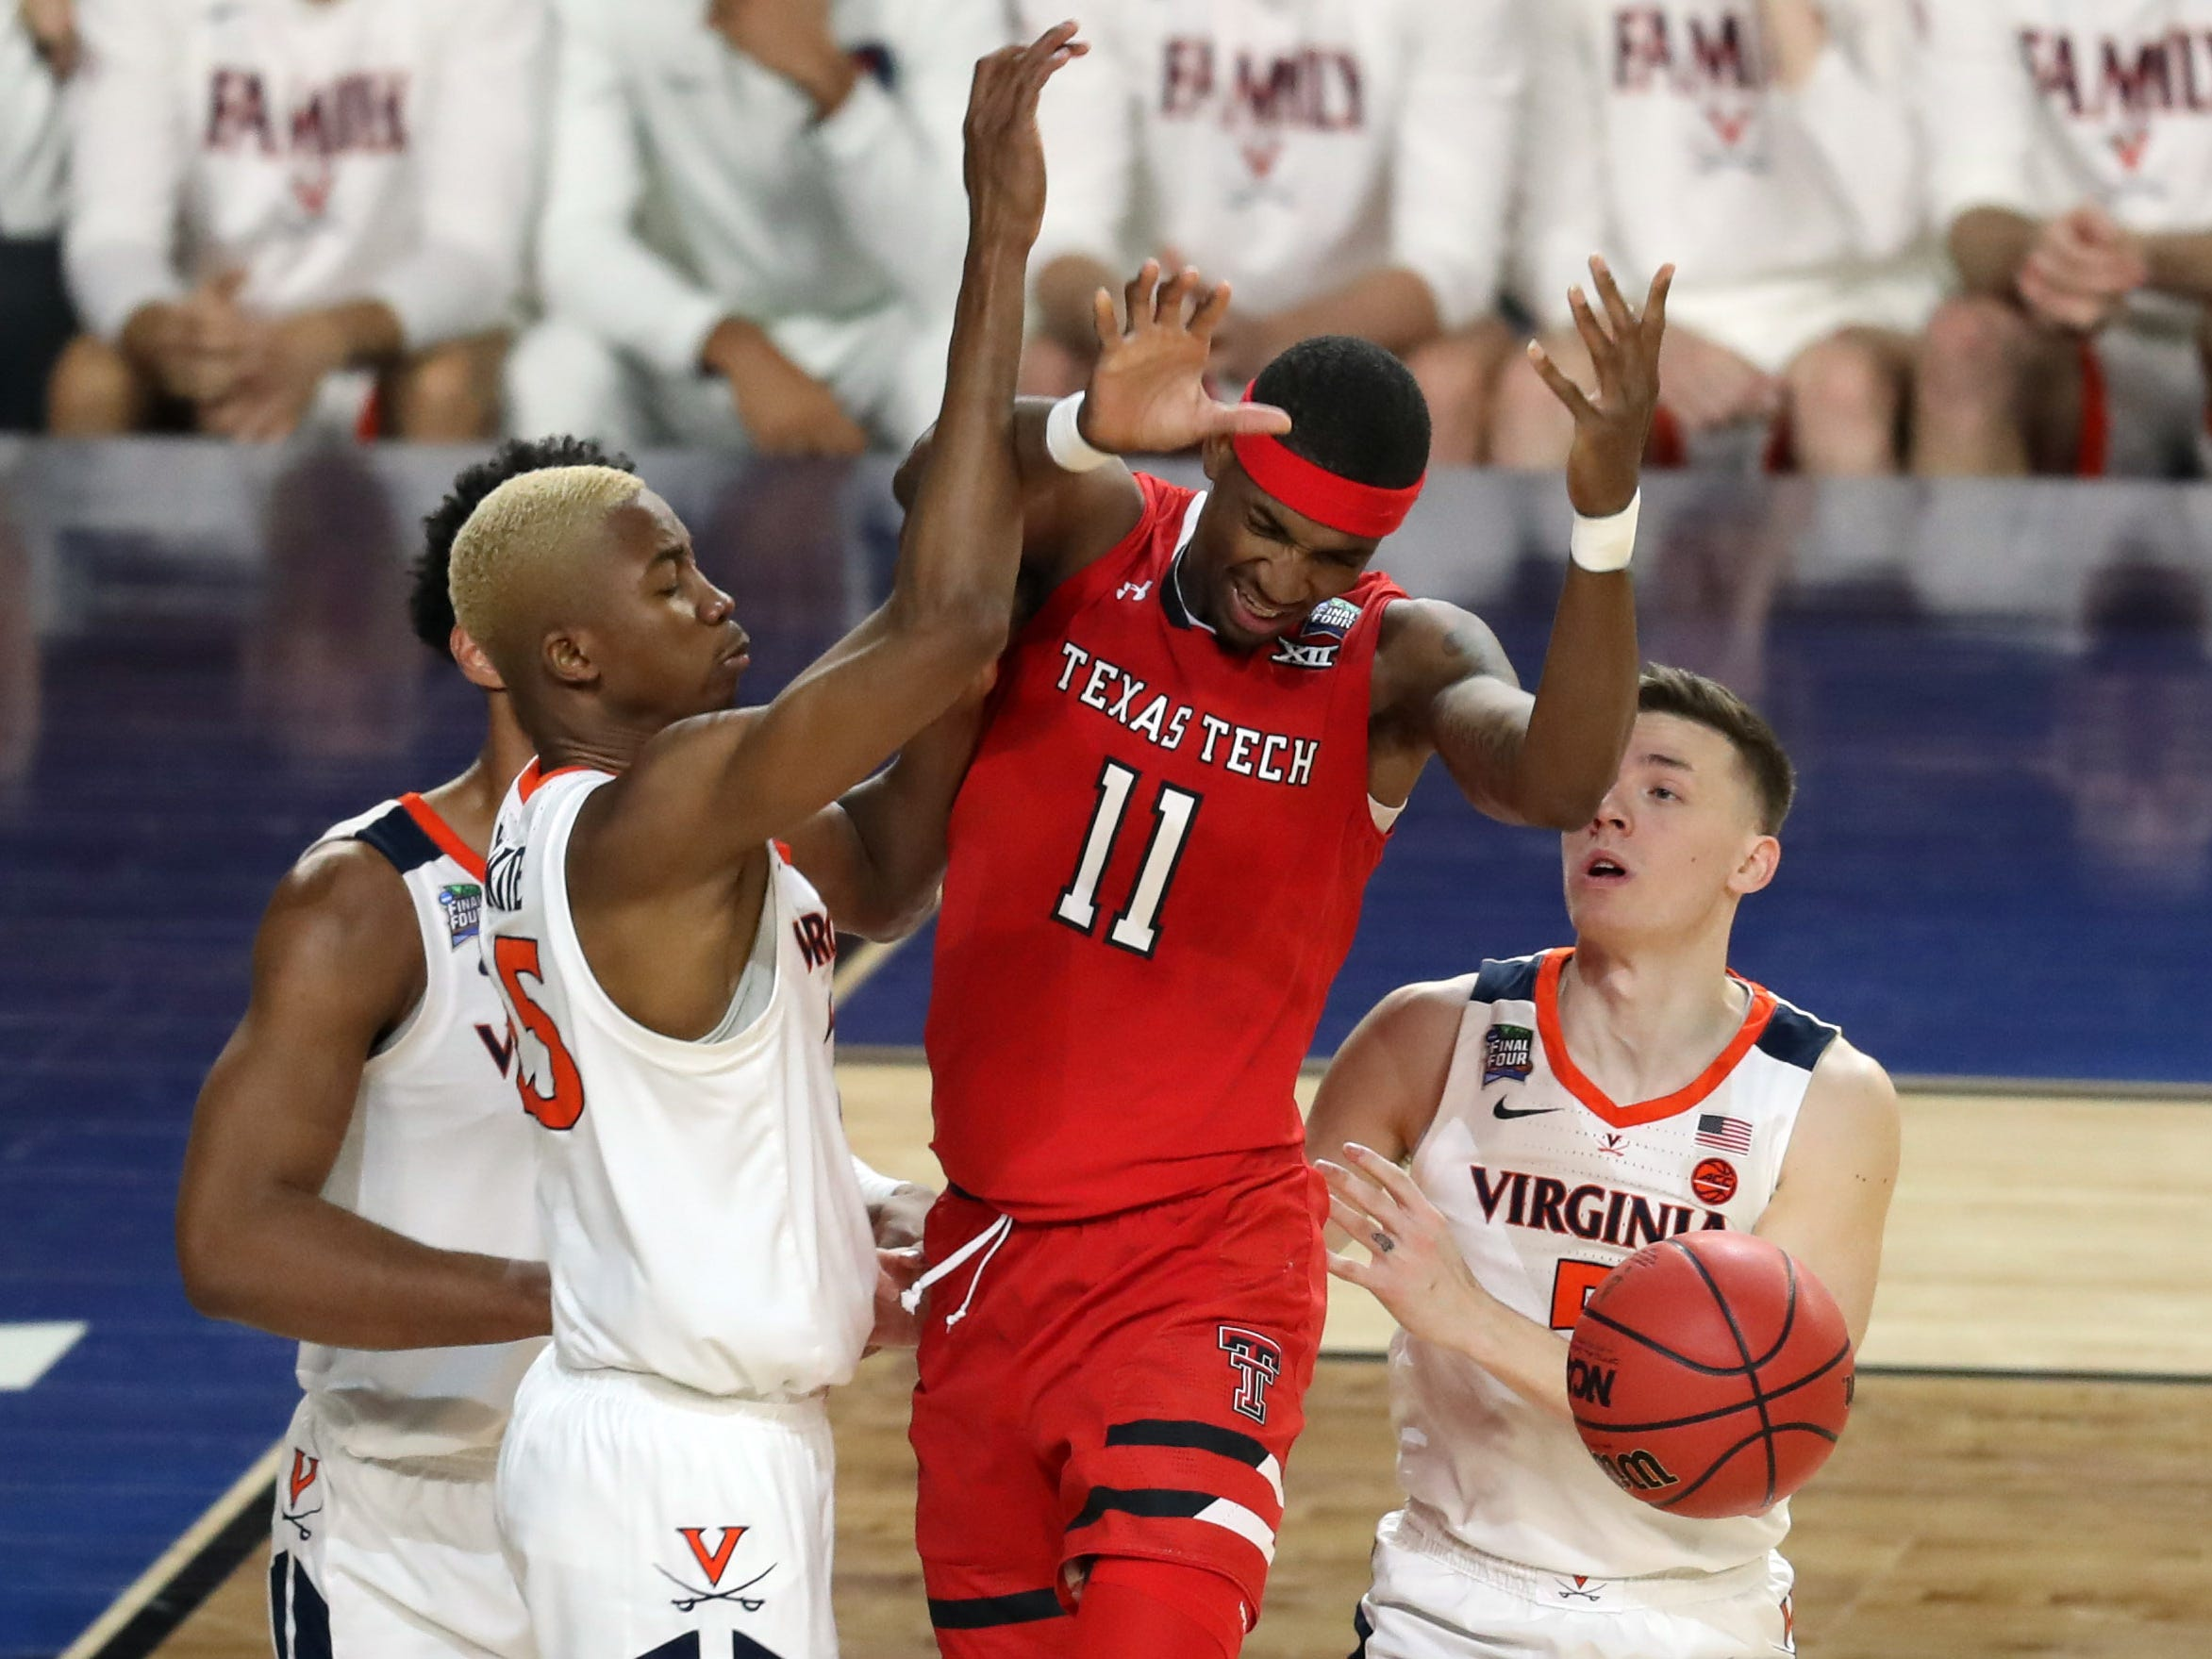 Texas Tech's Tariq Owens (11) loses control of the ball while Virginia's Mamadi Diakite (25) and Kyle Guy (5) defend.